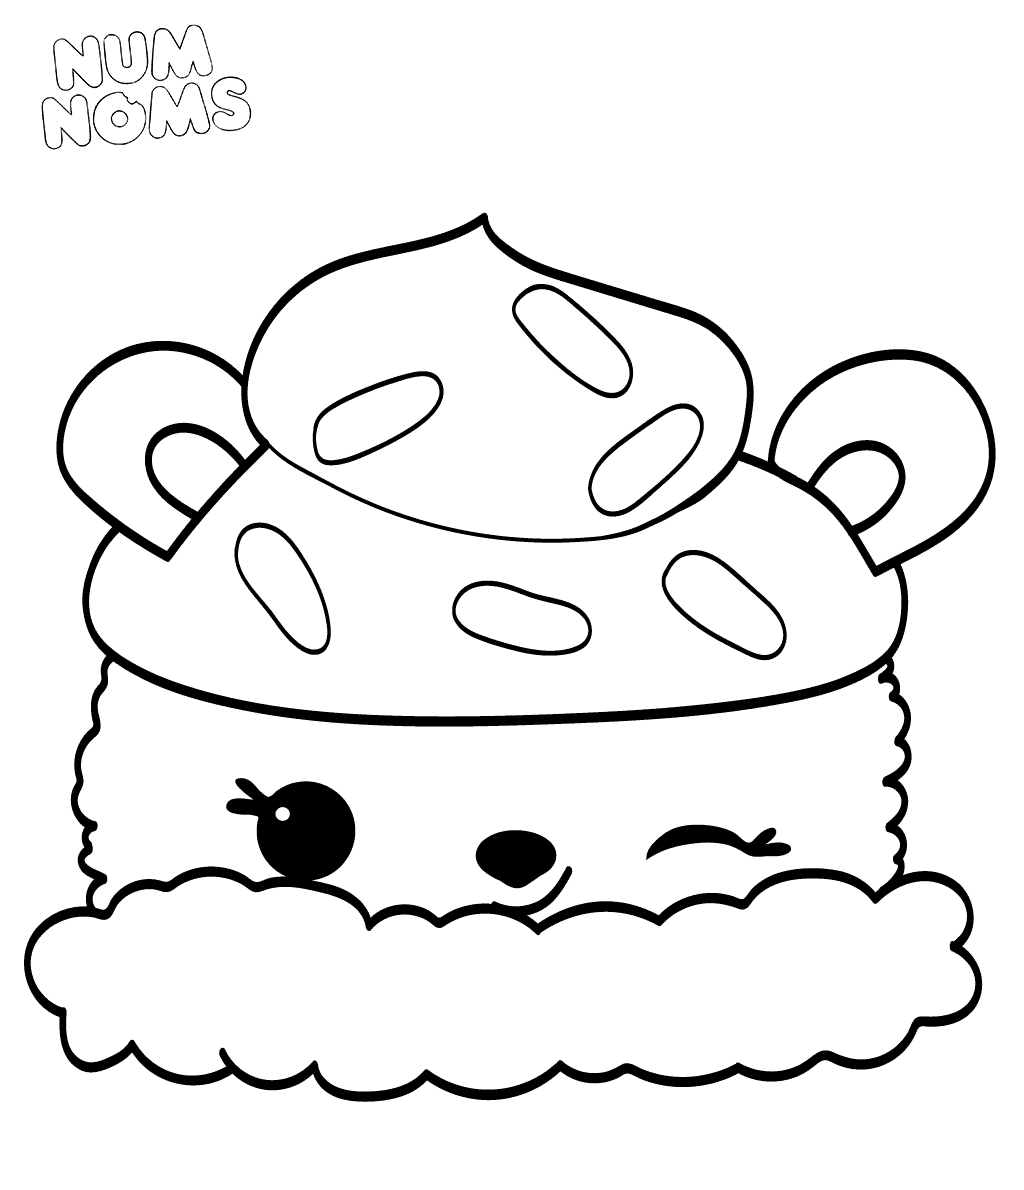 Coloring Pages Of Num Noms Season 2 Parker Peach Coloring Pages Cute Easy Drawings Butterfly Coloring Page